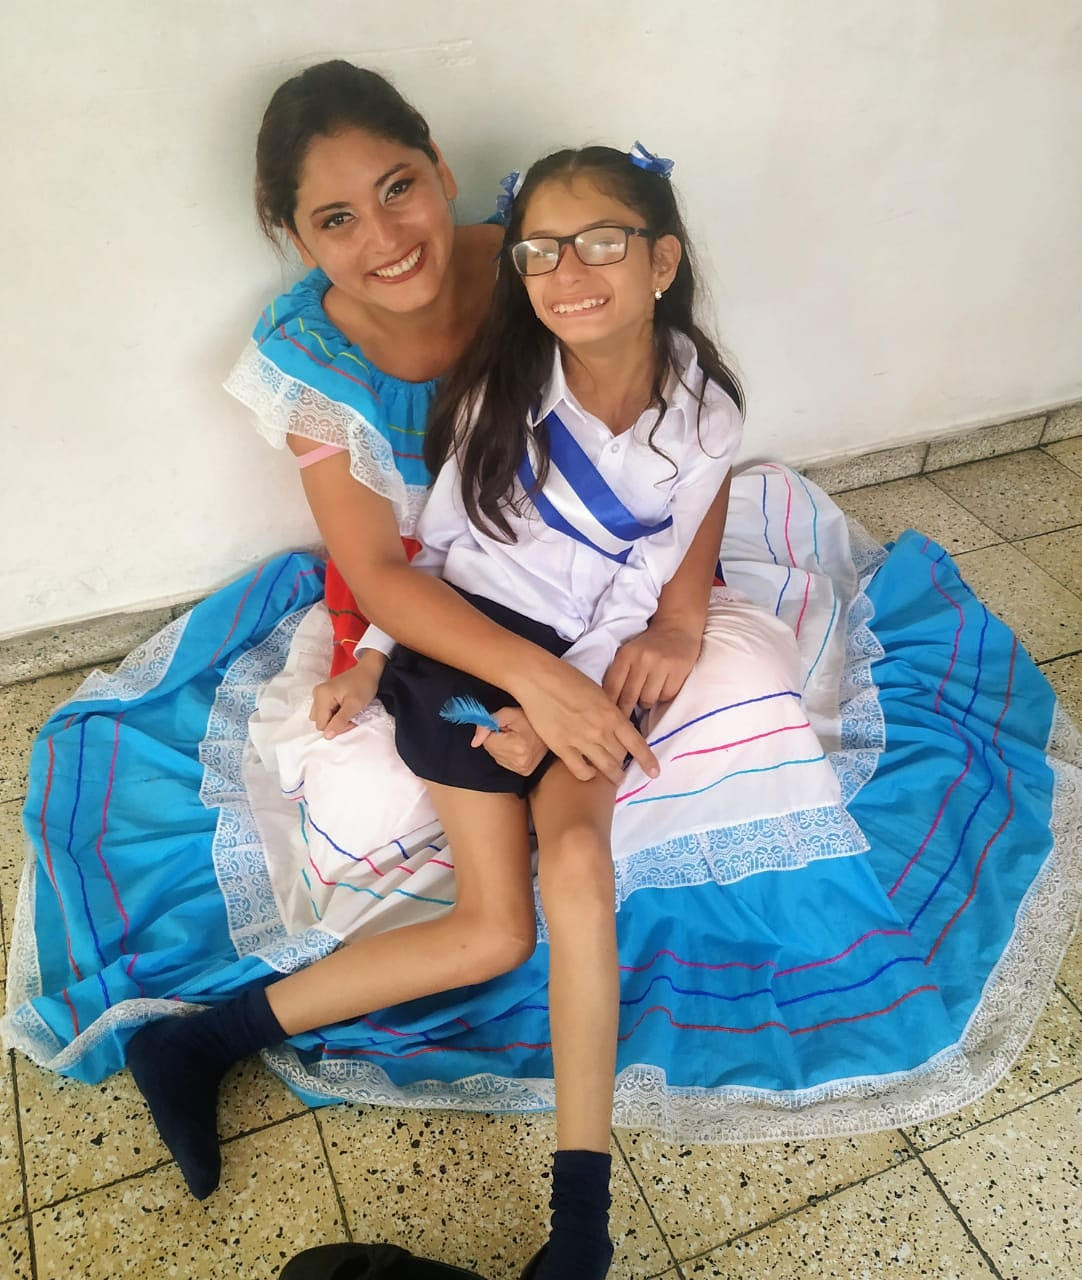 The Salvadoran Foundation for Deaf-Blindness and Multiple Disabilities is the First of its Kind to Advance Rights, Education and Inclusion